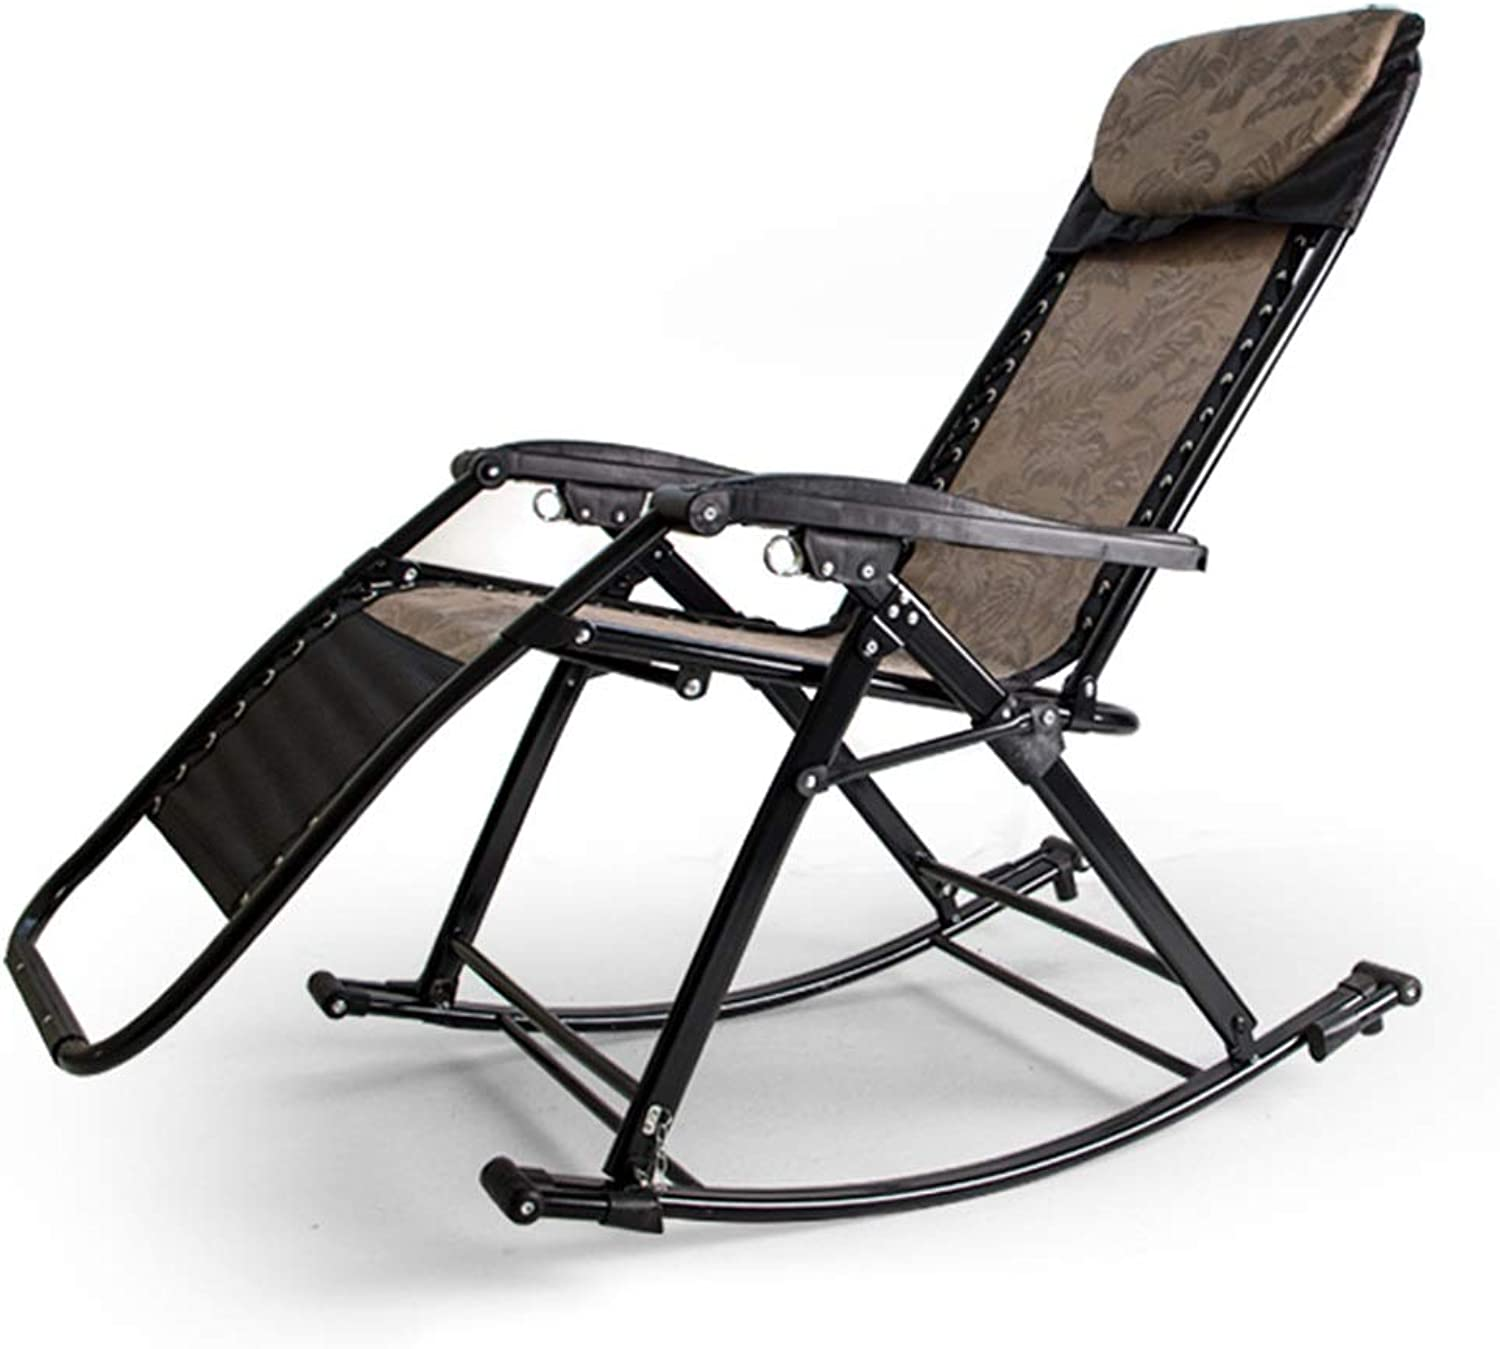 Sun Loungers, MultiFunctional Rocking Chairs, Office Lunch Break Chairs, Folding Chairs, Casual Adult Easy Chair SAN_Y